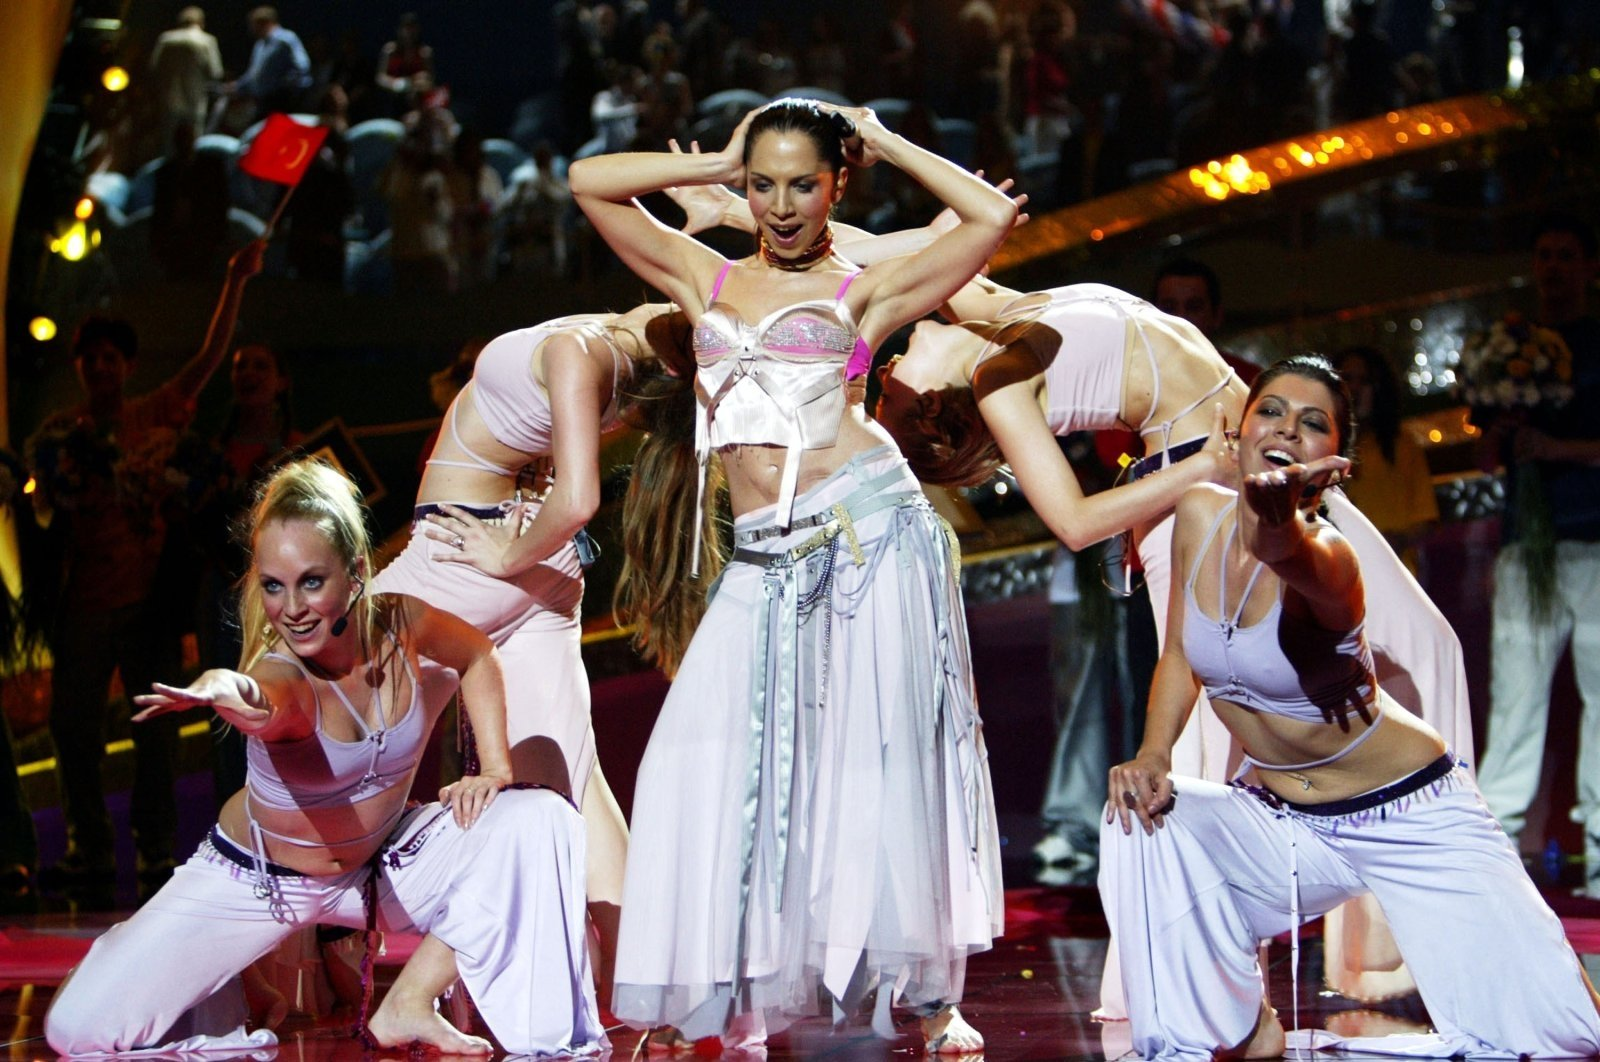 """Sertab Erener performs """"Every Way That I Can"""" during the 48th Eurovision Song Contest in Riga, Latvia, May 24, 2003. (Getty Images)"""